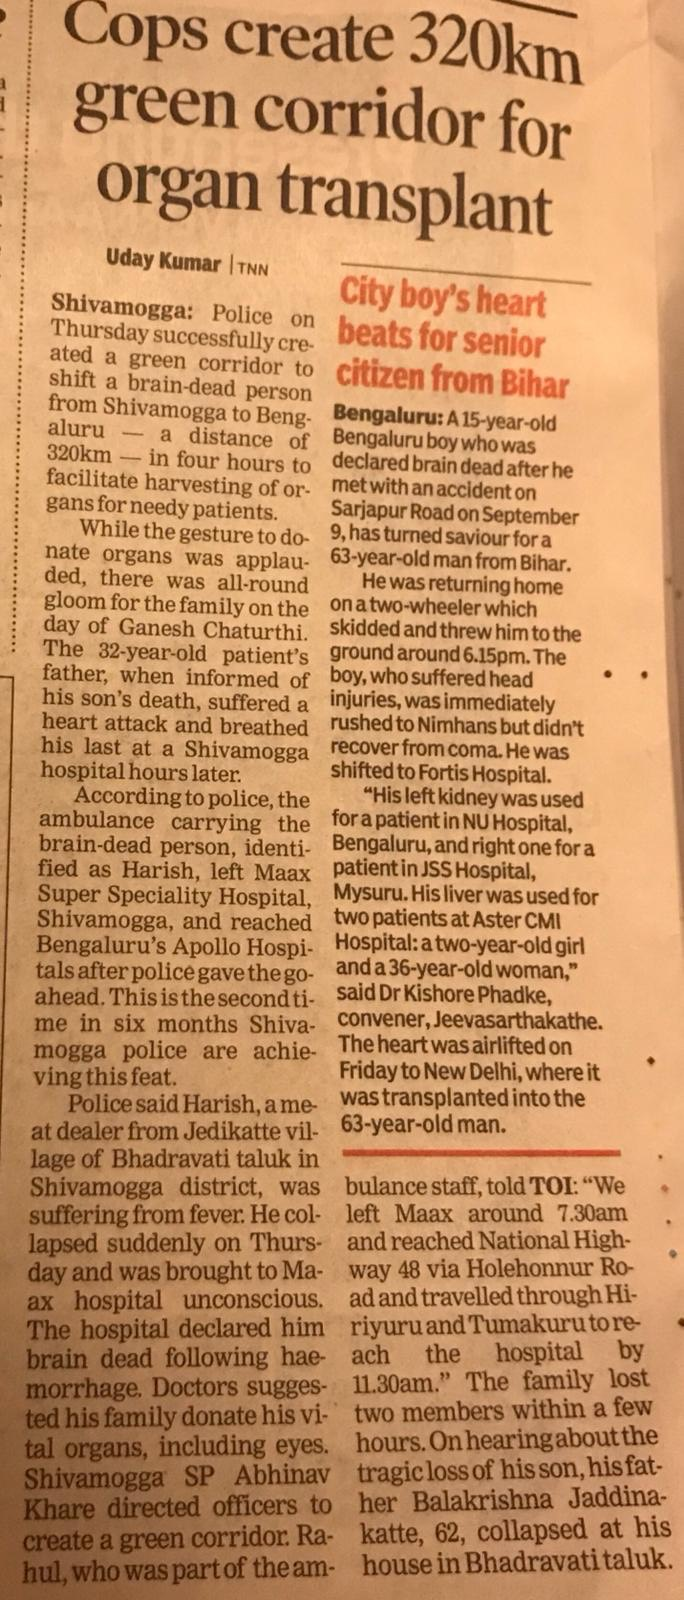 NU in times of India